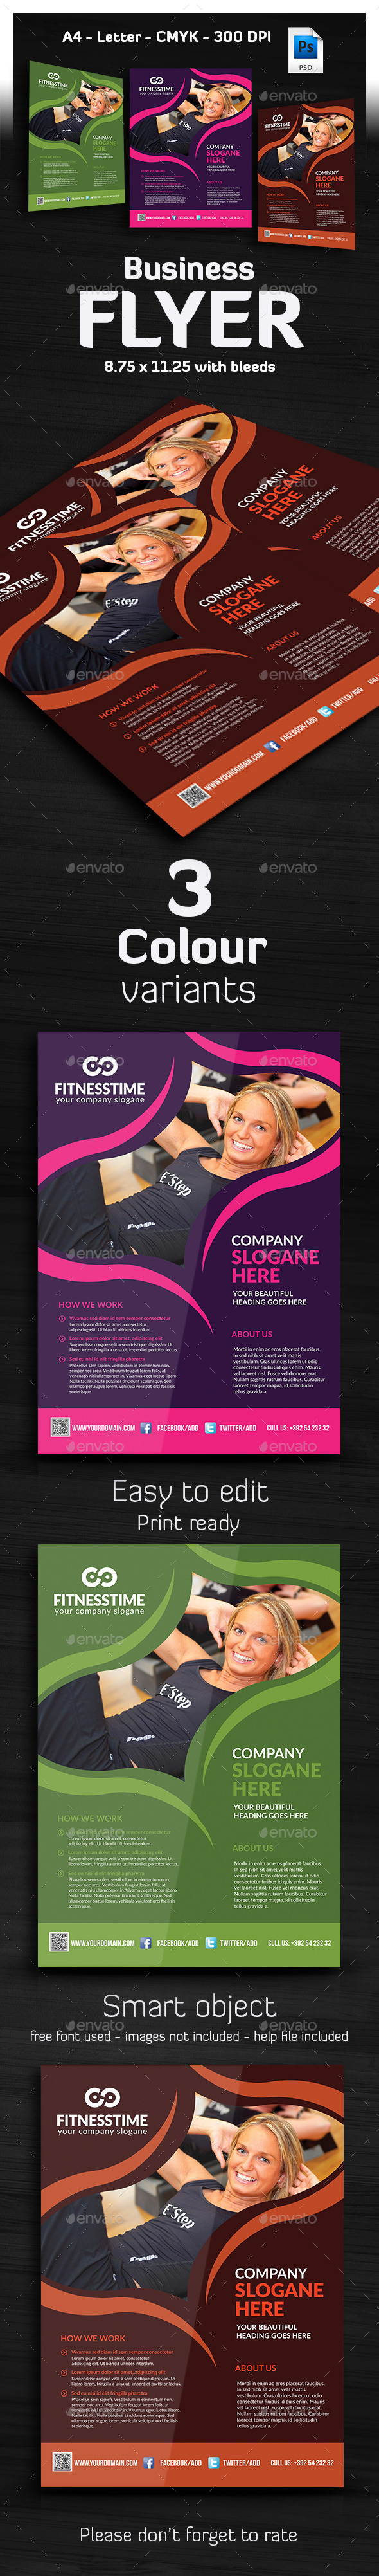 Tivato - Ultimate Business Flyer - Commerce Flyers